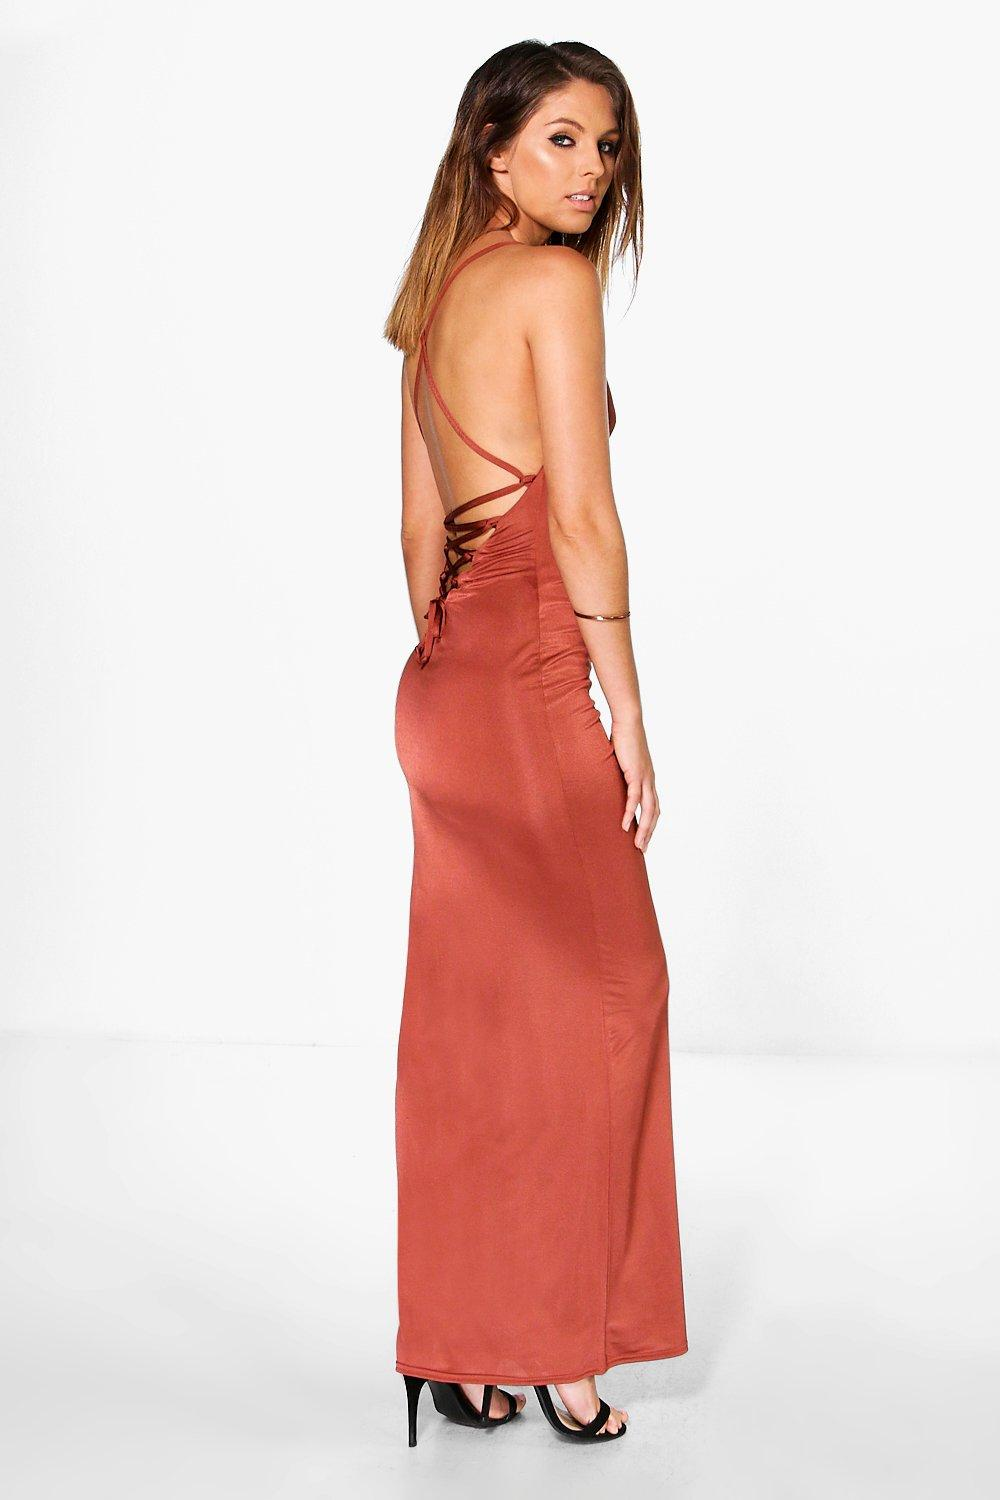 Lissandra Lace Back Strappy Maxi Dress